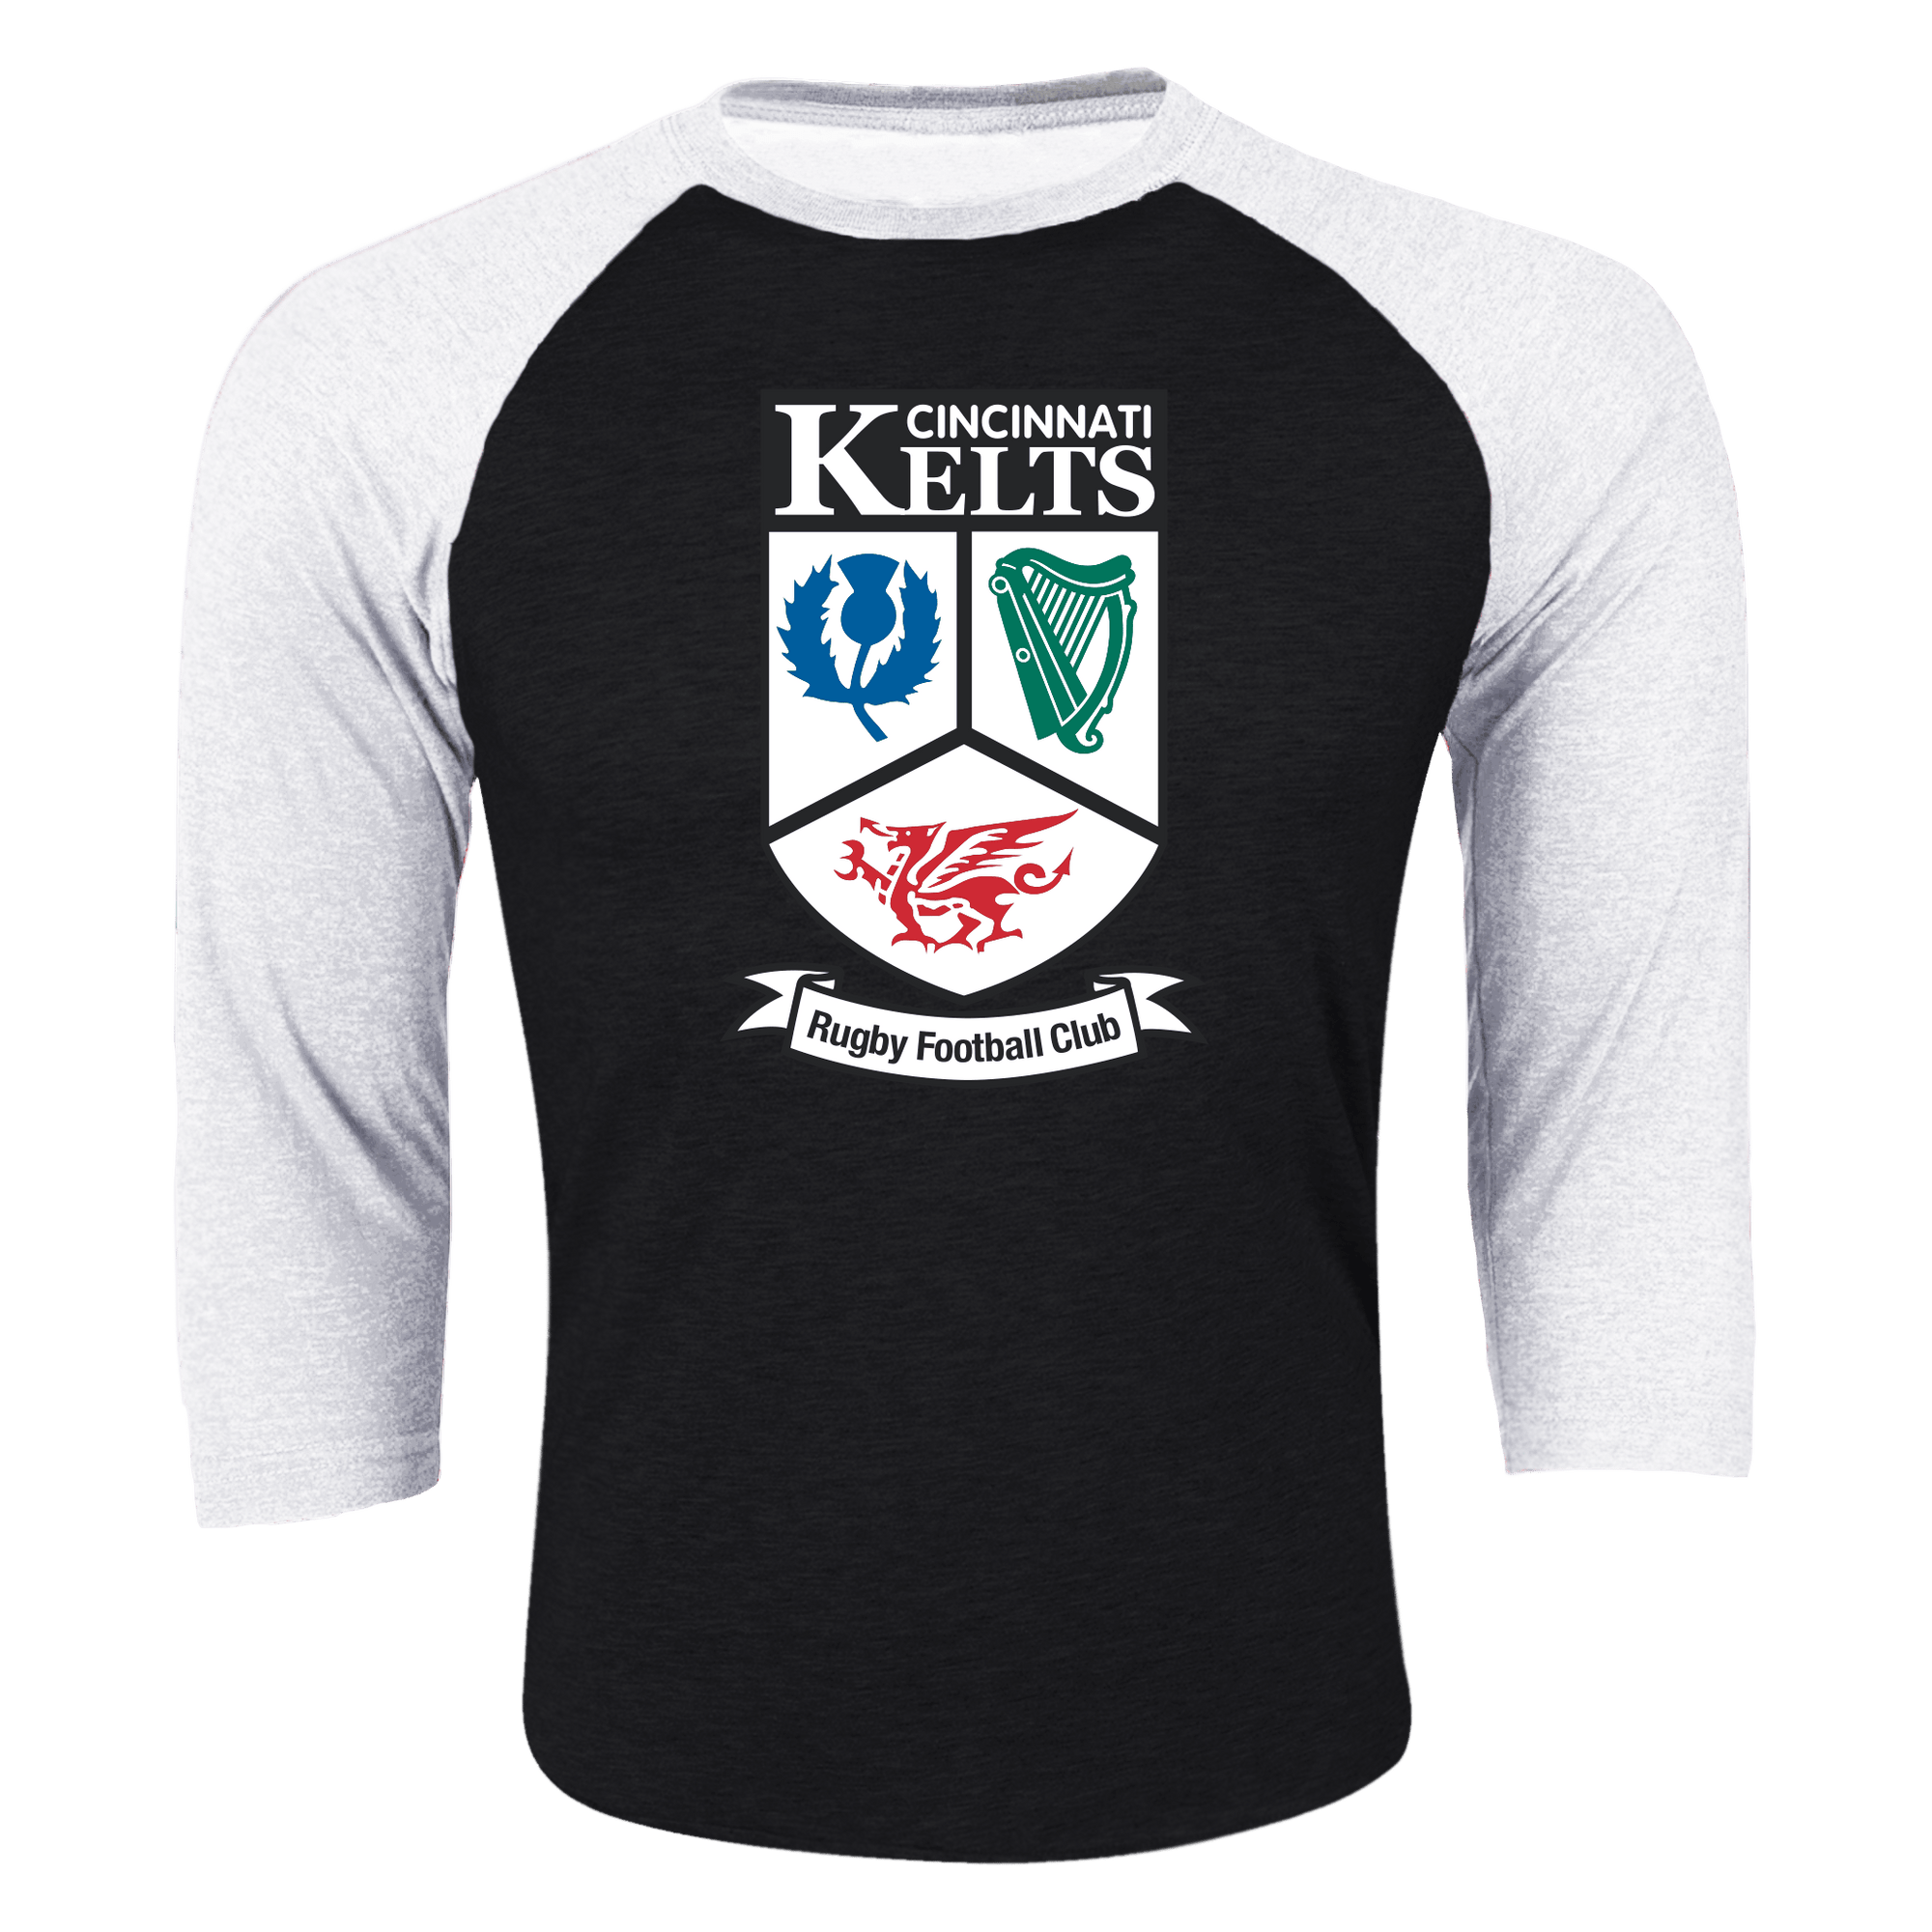 Cincinnati Kelts RFC 3/4 Sleeve Raglan Shirt